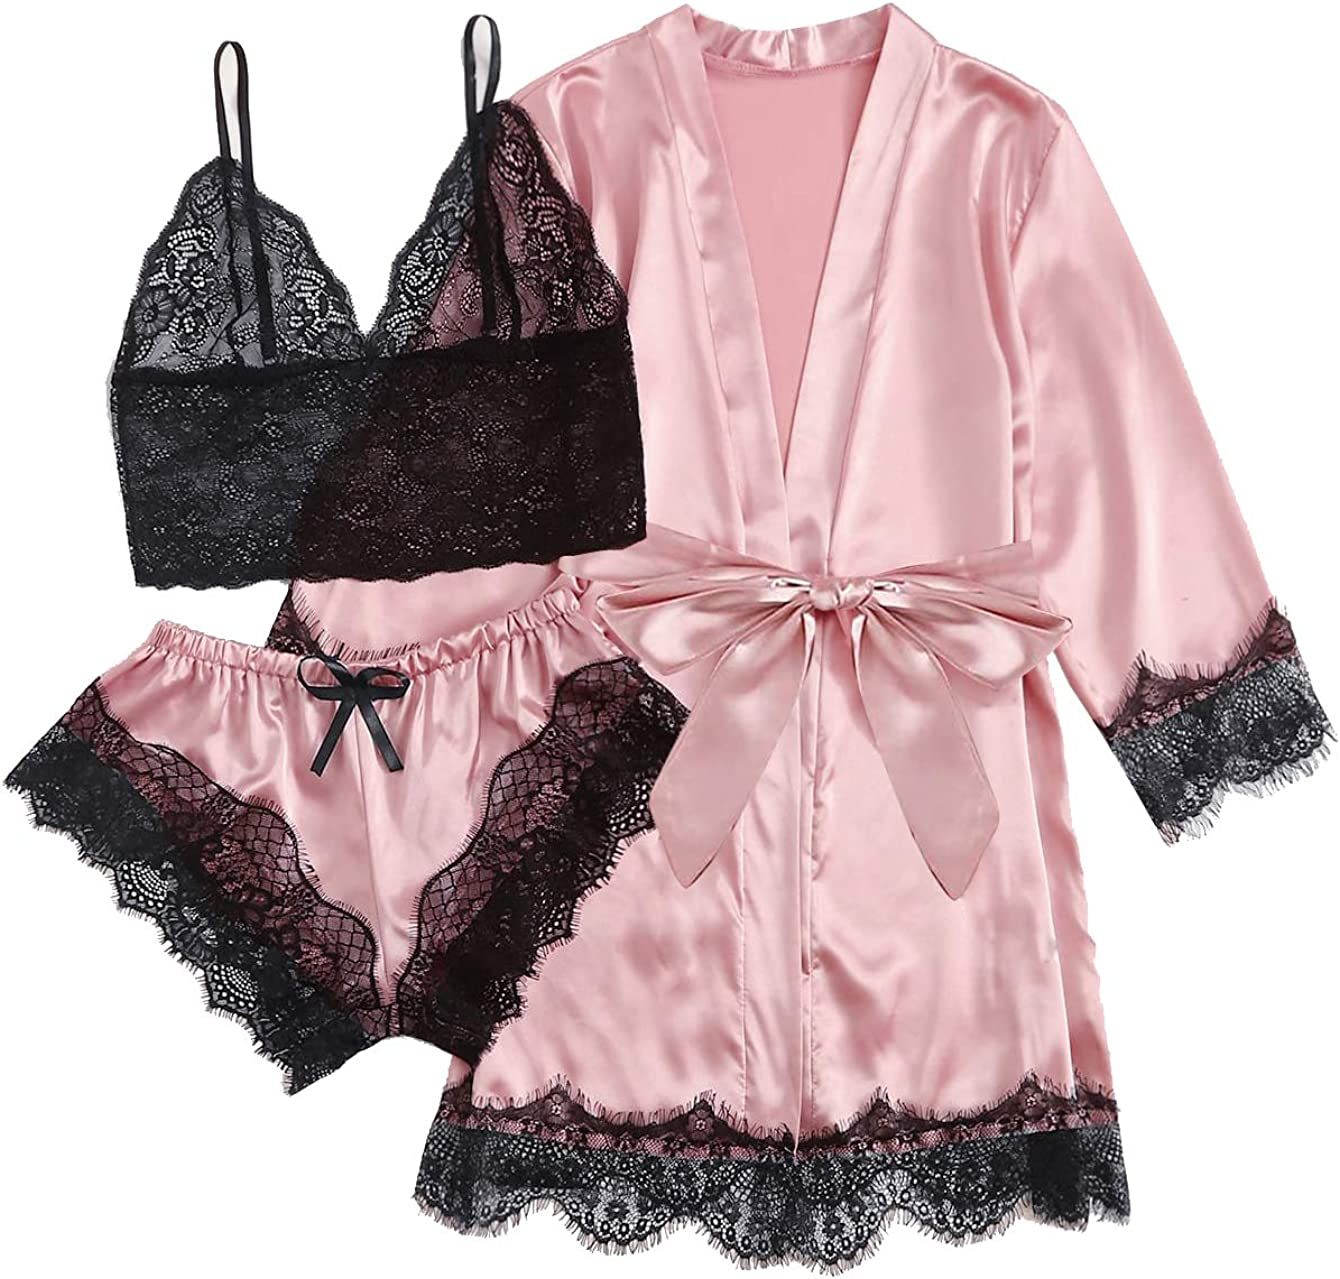 TAKOYI Women's Sexy Lace 3 Piece Satin Robe and Pajama Set Cami Top Lingerie with Robe Camisole Shorts